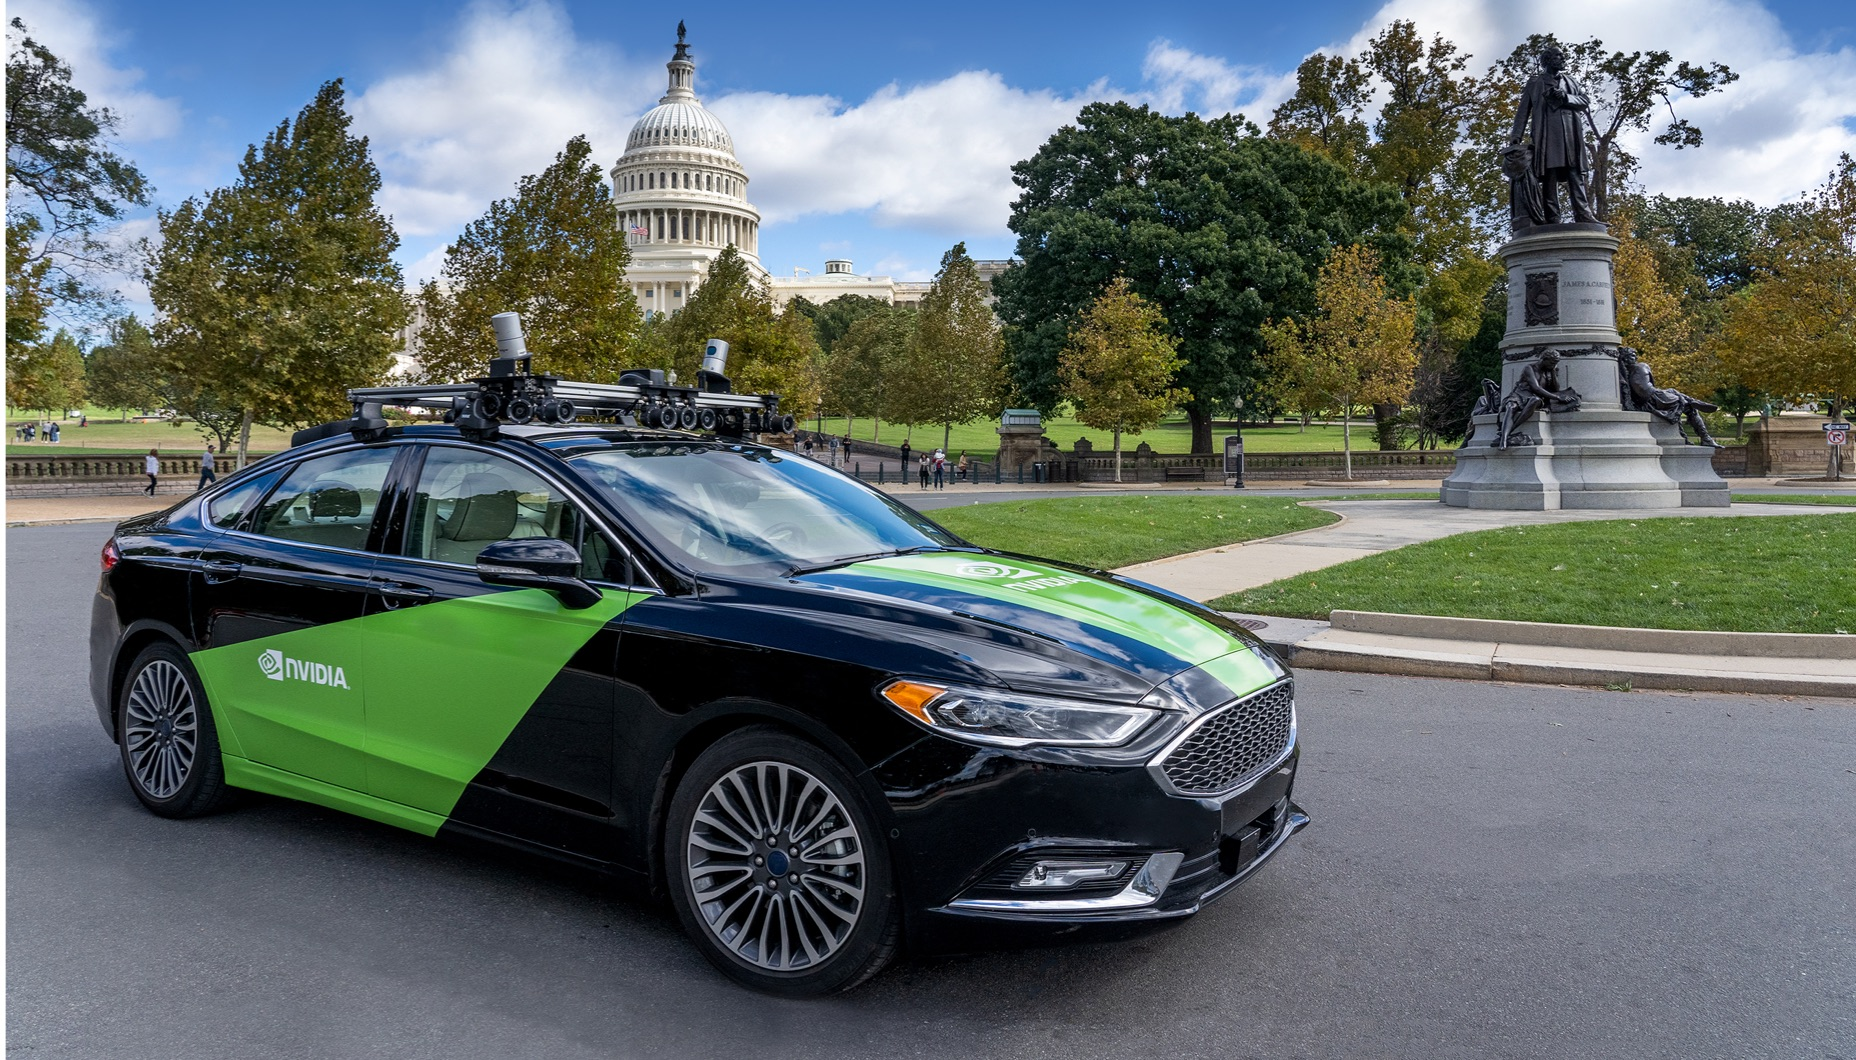 Self-Driving Cars Technology & Solutions | NVIDIA Automotive